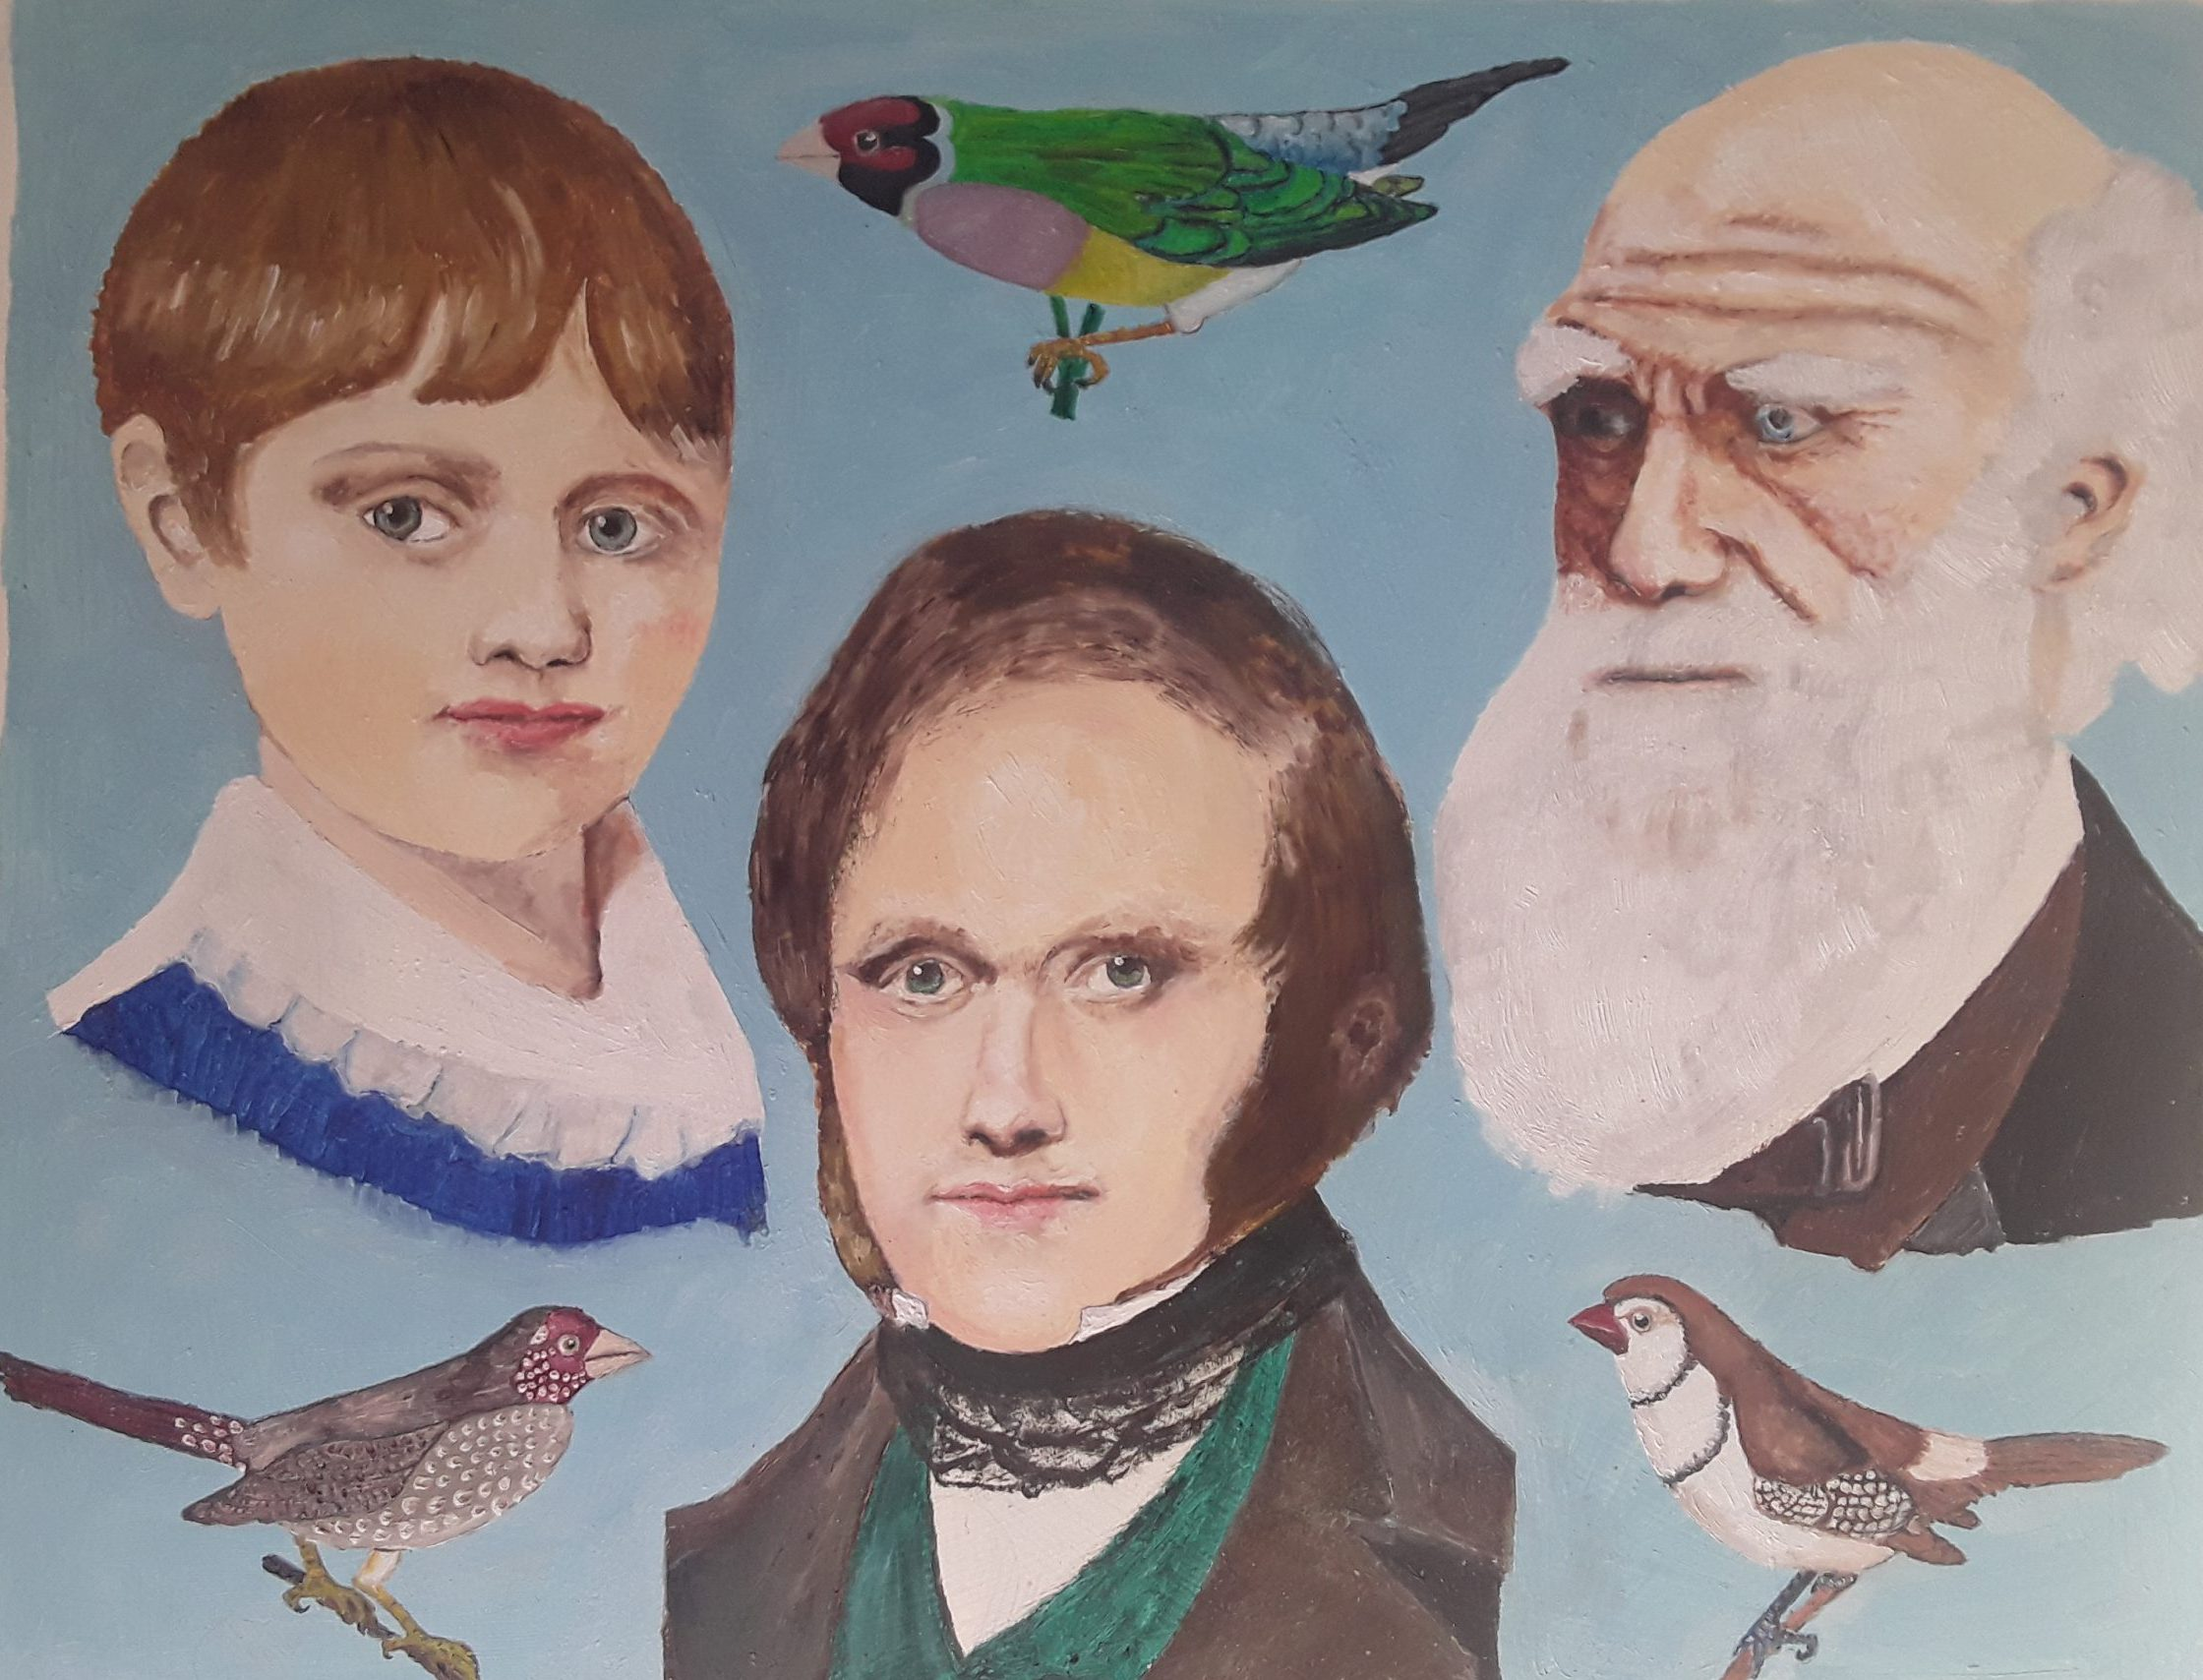 Charles's Darwins Finches